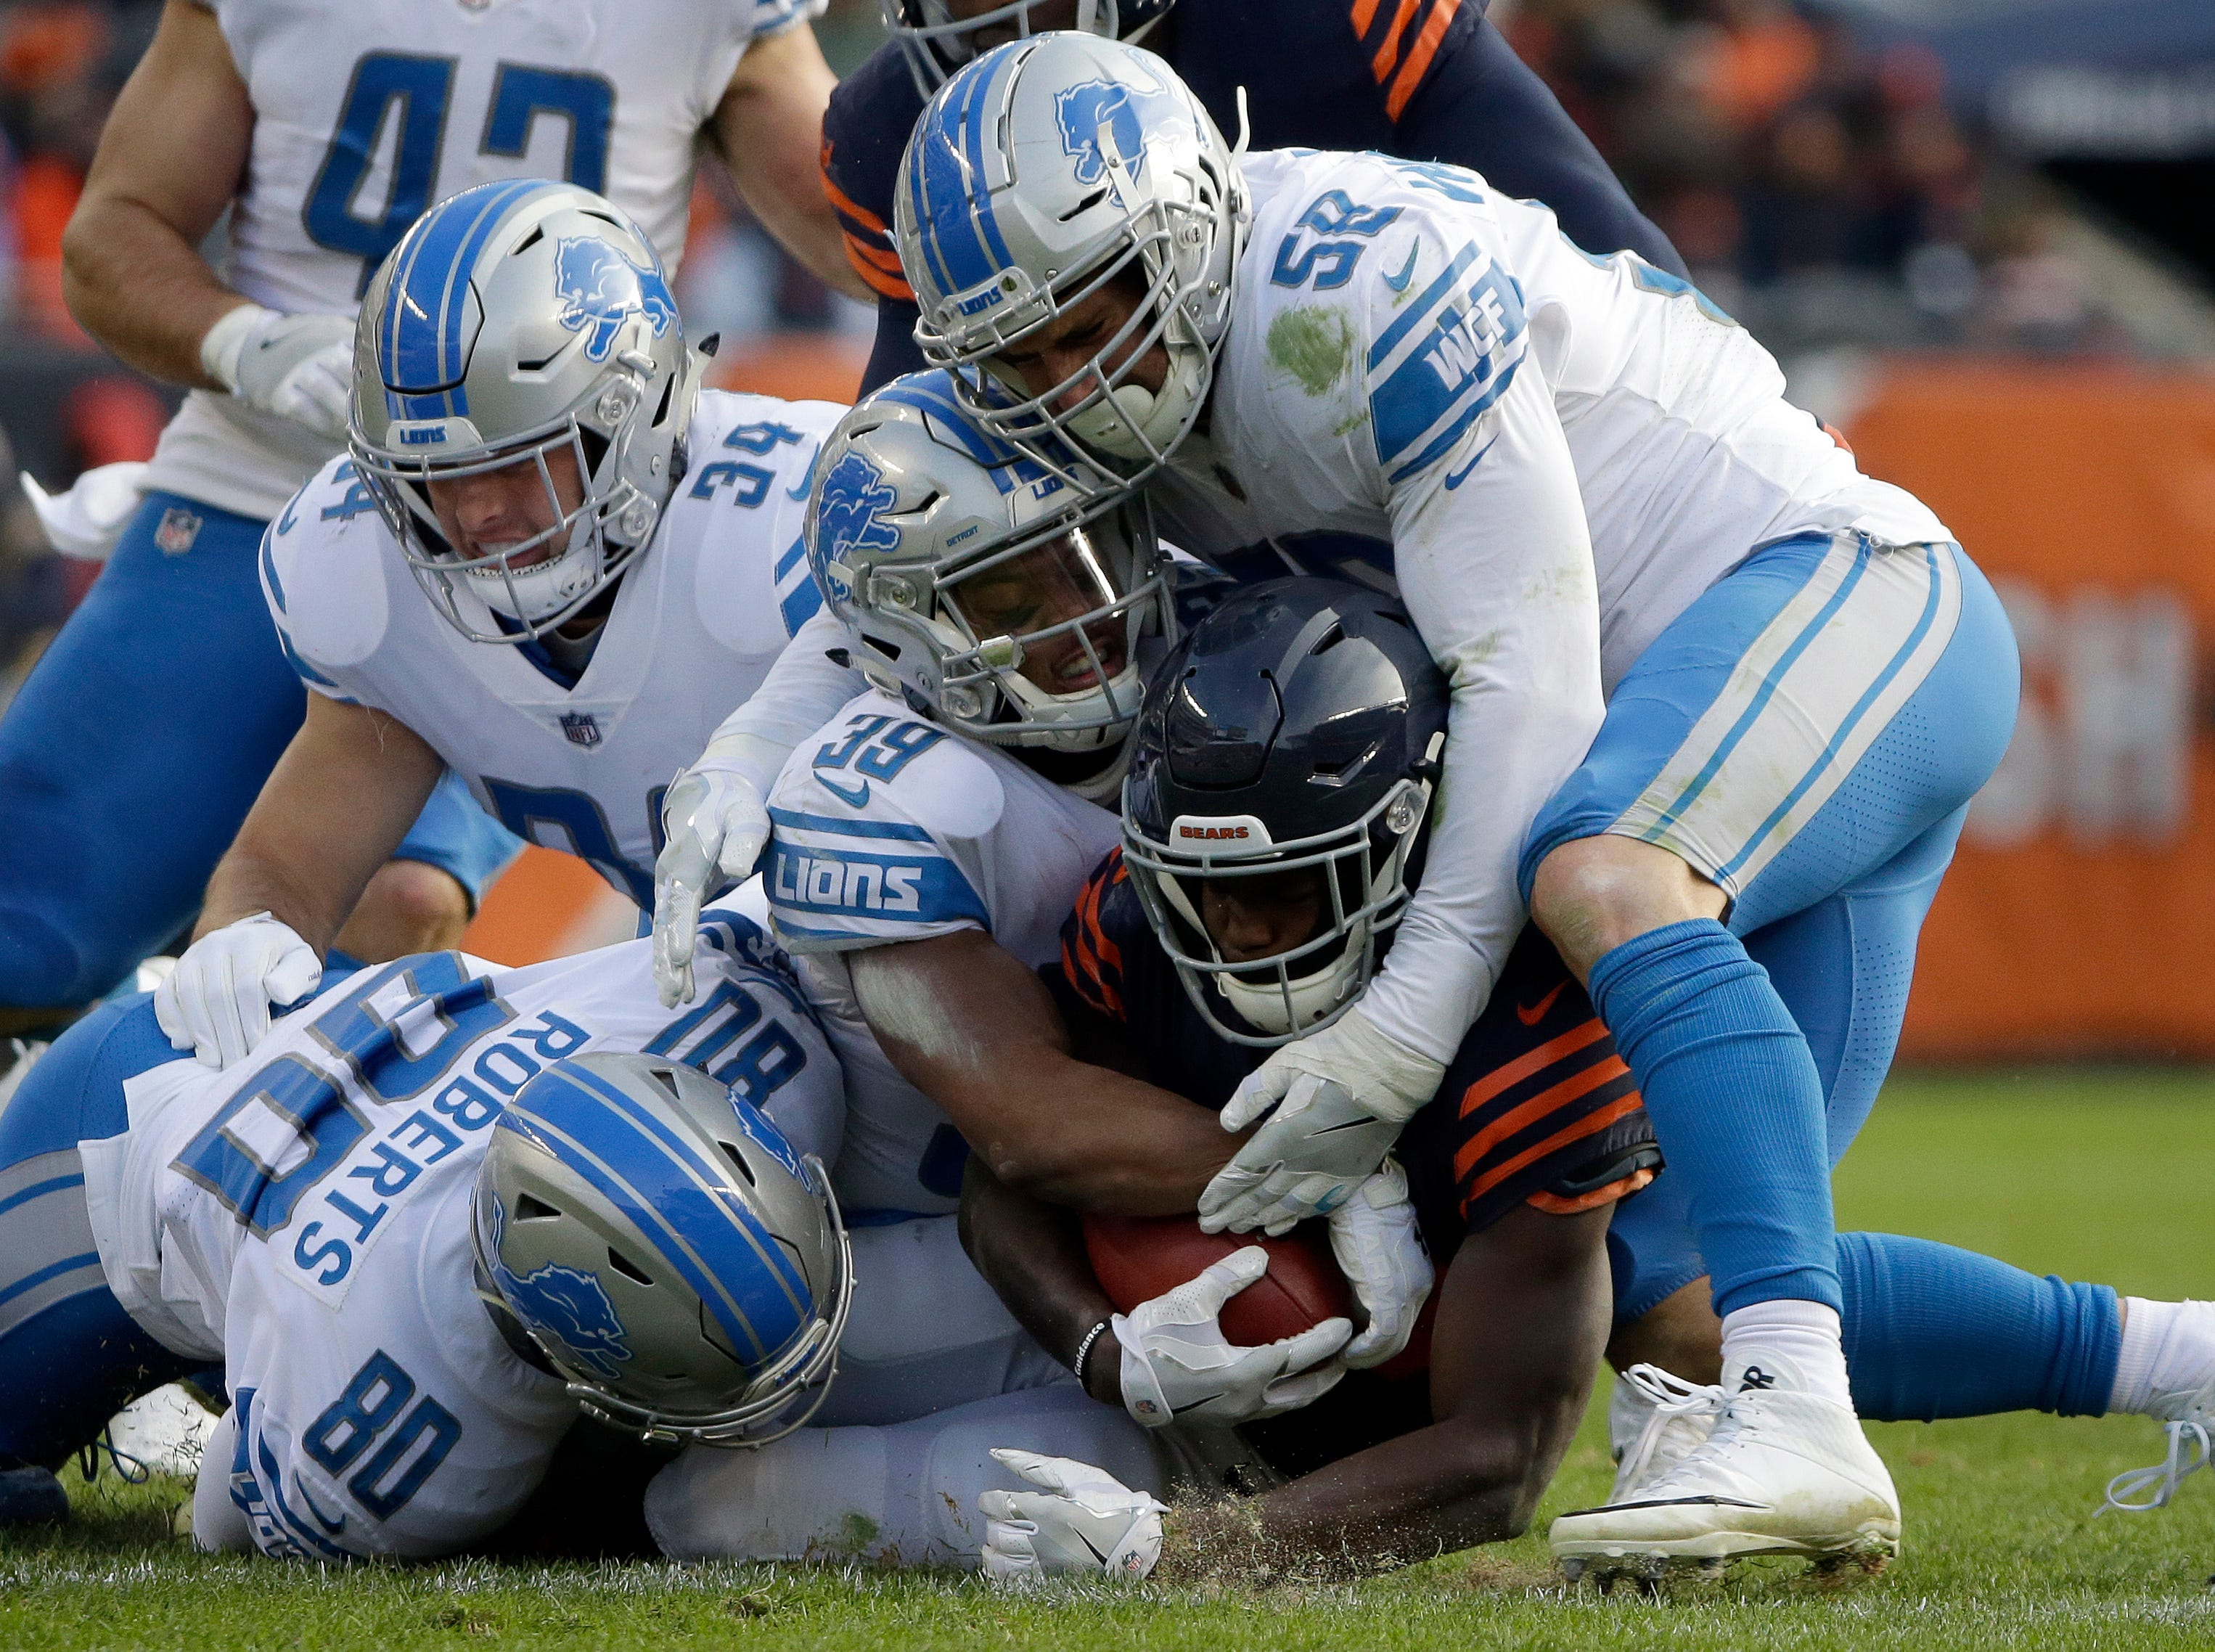 Chicago Bears' Tarik Cohen is tackled by Detroit Lions' Michael Roberts (80), Jamal Agnew (39), Paul Worrilow (58) and Zach Zenner (34) during the second half of an NFL football game, Sunday, Nov. 19, 2017, in Chicago. (AP Photo/Nam Y. Huh)